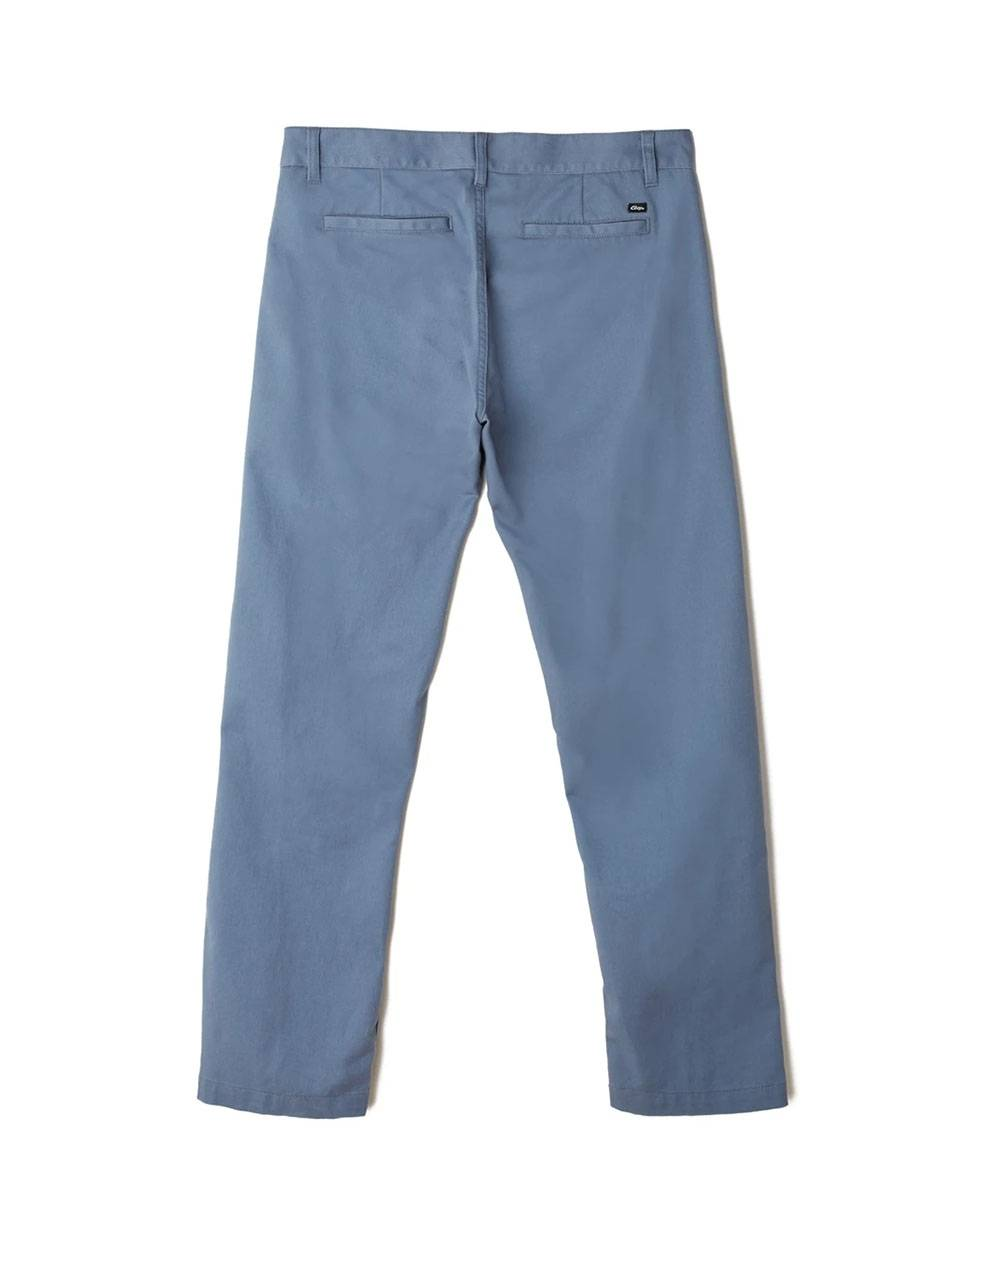 Obey straggler flooded pants - dull blue obey Pant 83,61€